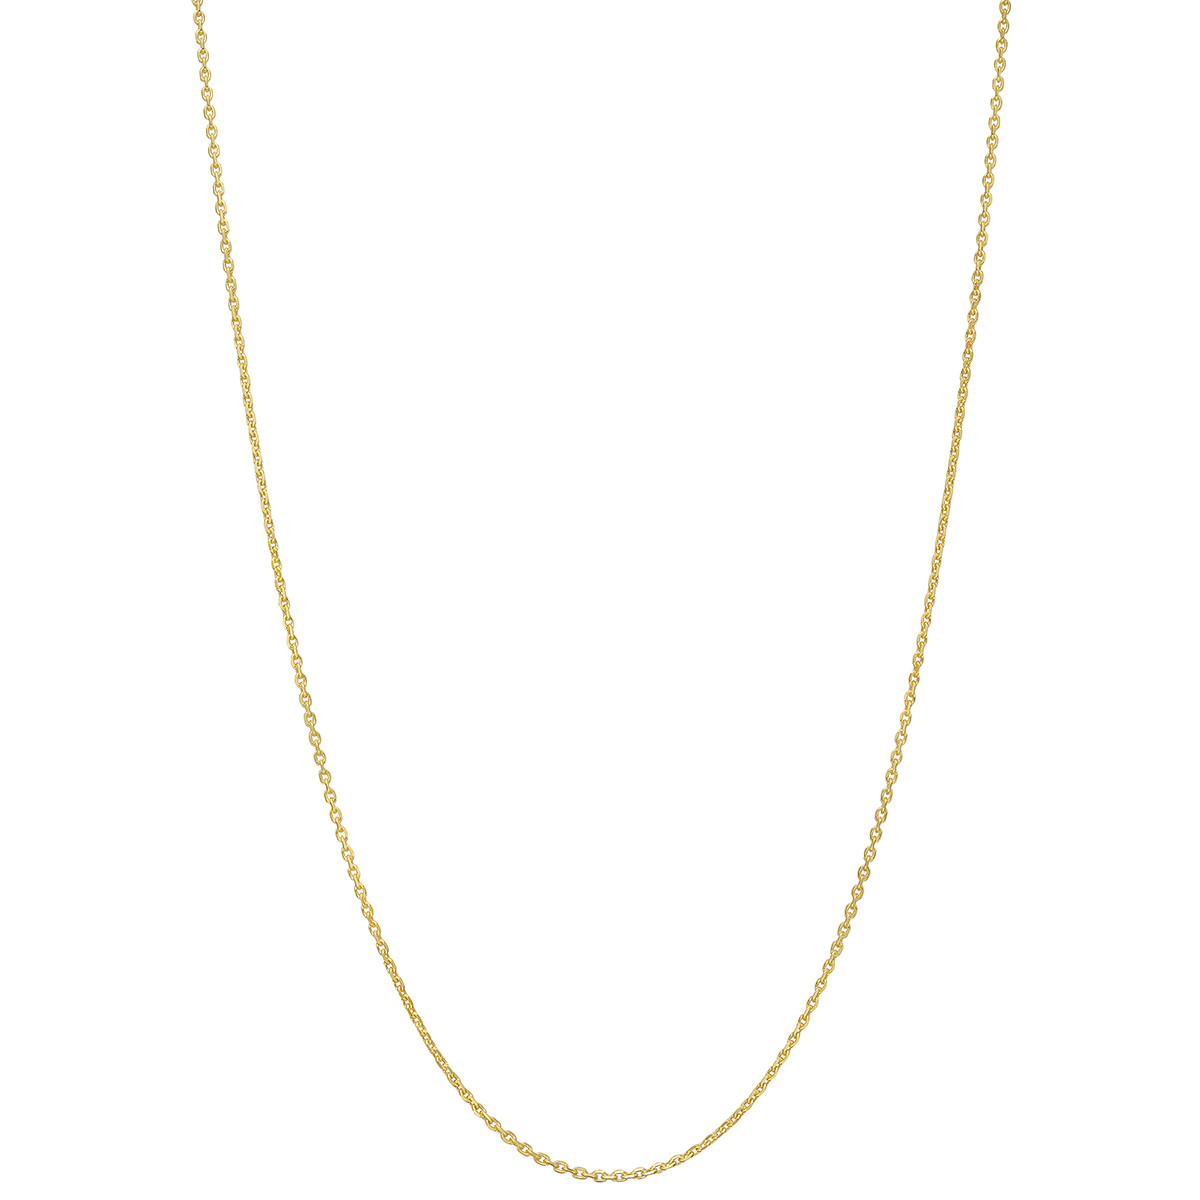 "18k Yellow Gold Thin Diamond-Cut Link Chain Necklace (16"")"